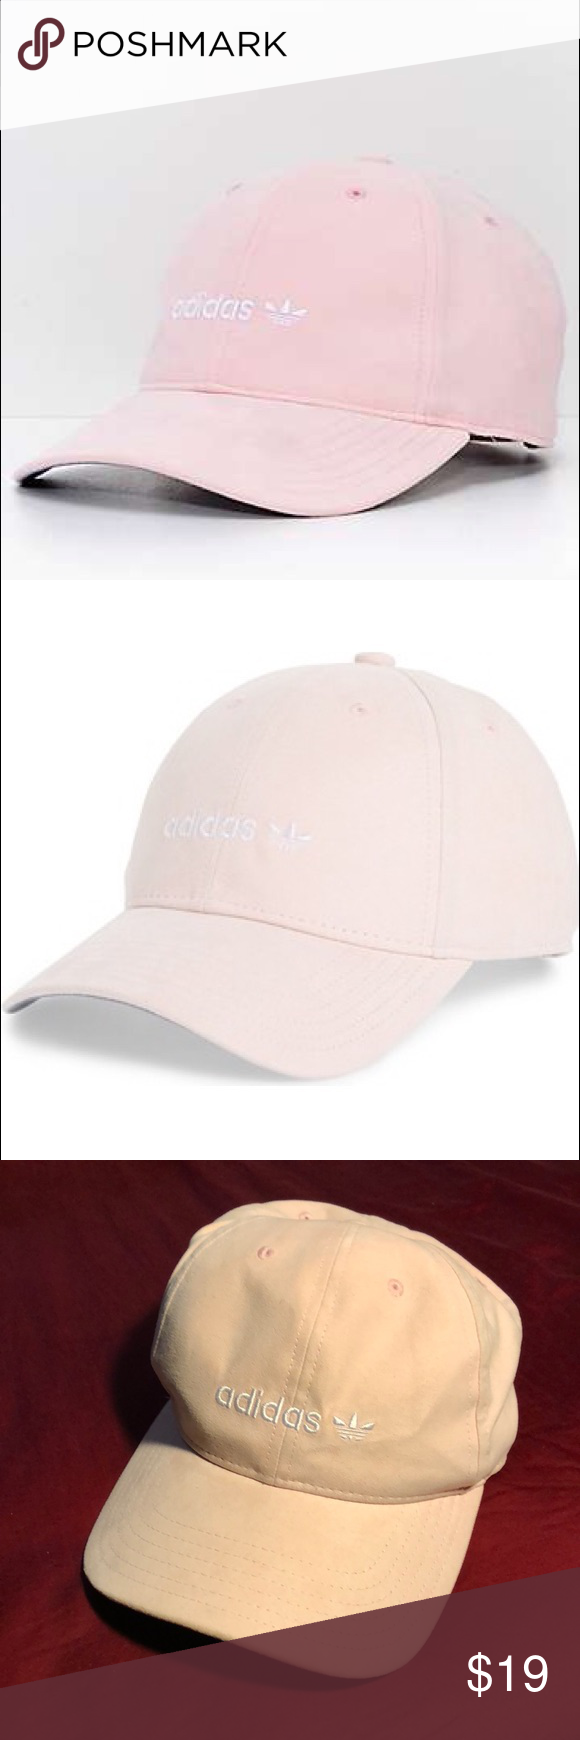 64497abca4c adidas Women s Relaxed Plus Blush Pink Cap Hat adidas brings you another  stylish accessory you can wear time and time again with the Relaxed Plus  Blush Pink ...